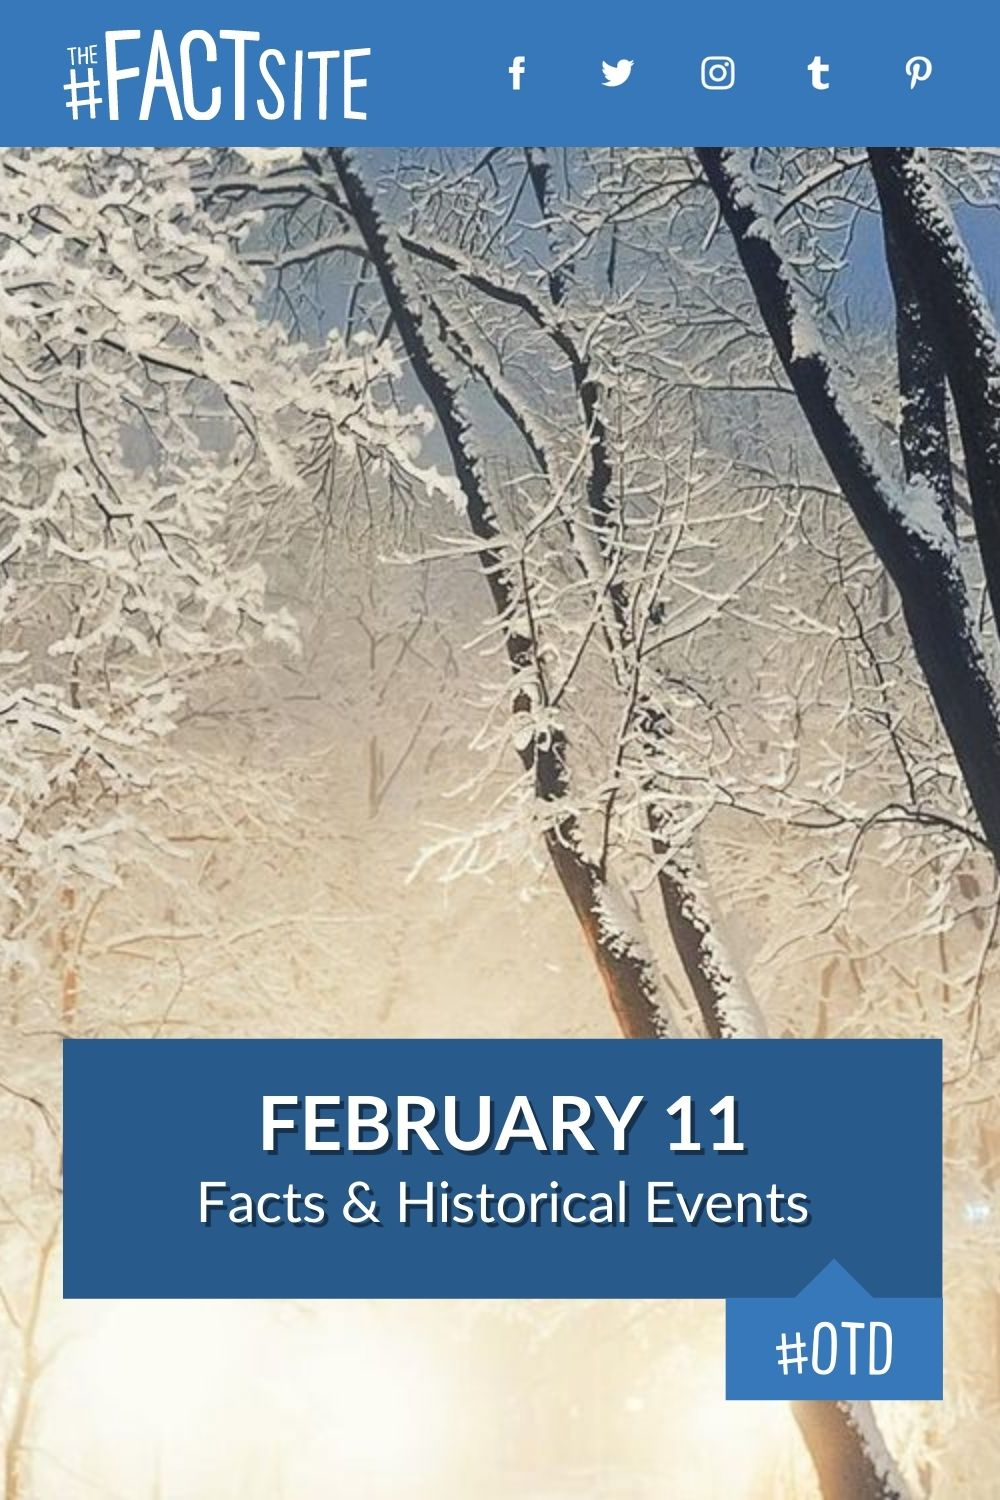 Facts & Historic Events That Happened on February 11